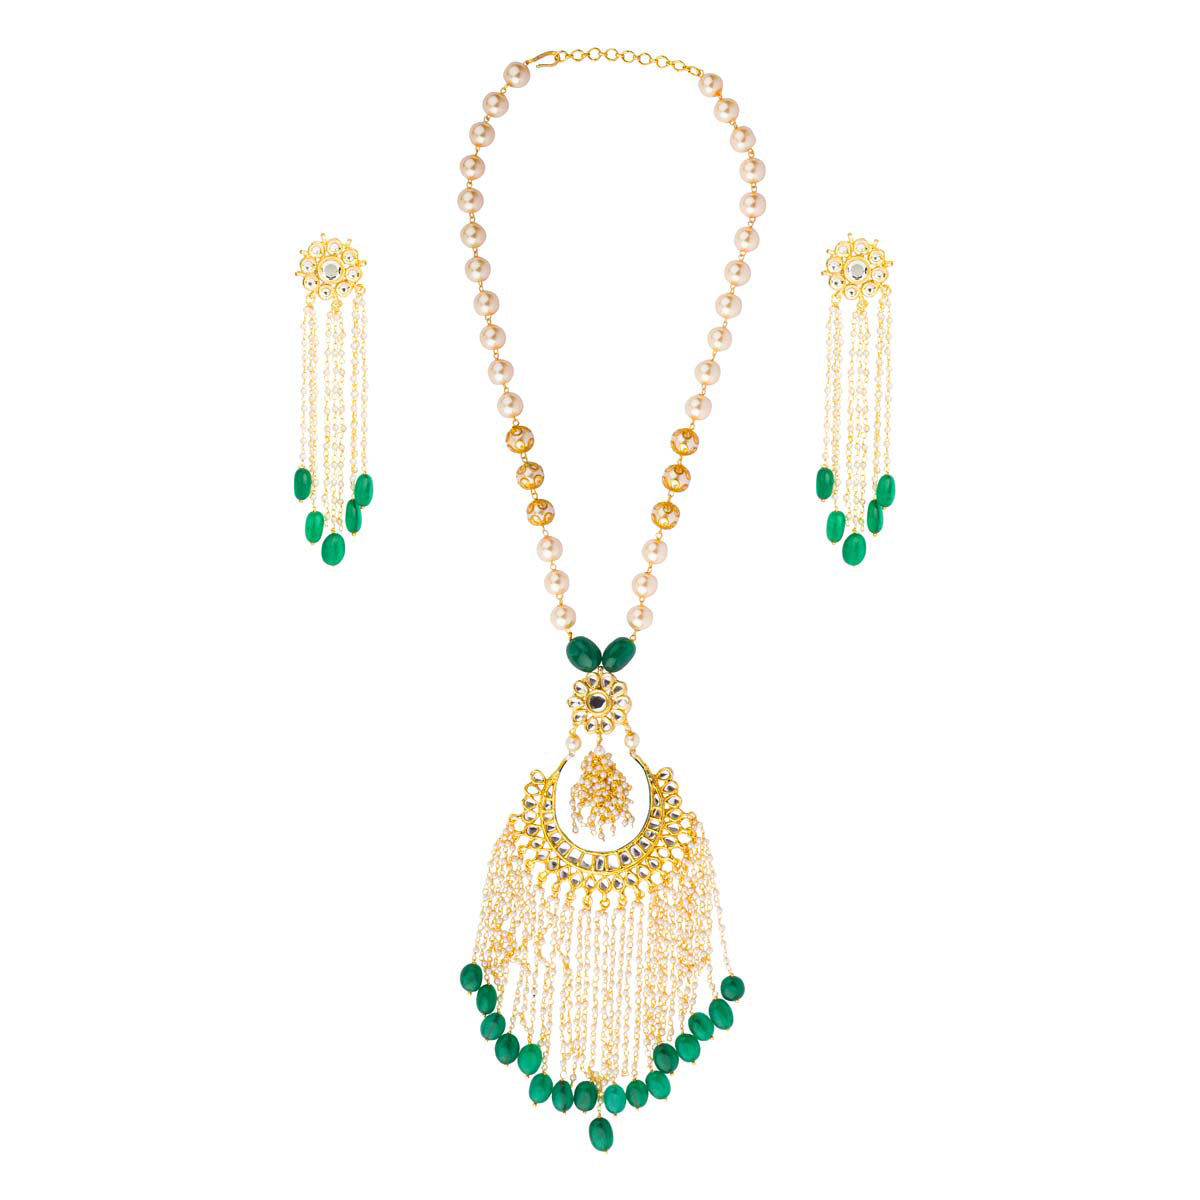 Look euphoric and perfectly put together in this complete set of a necklace & earrings set in kundan with pearl and green stone tassels.